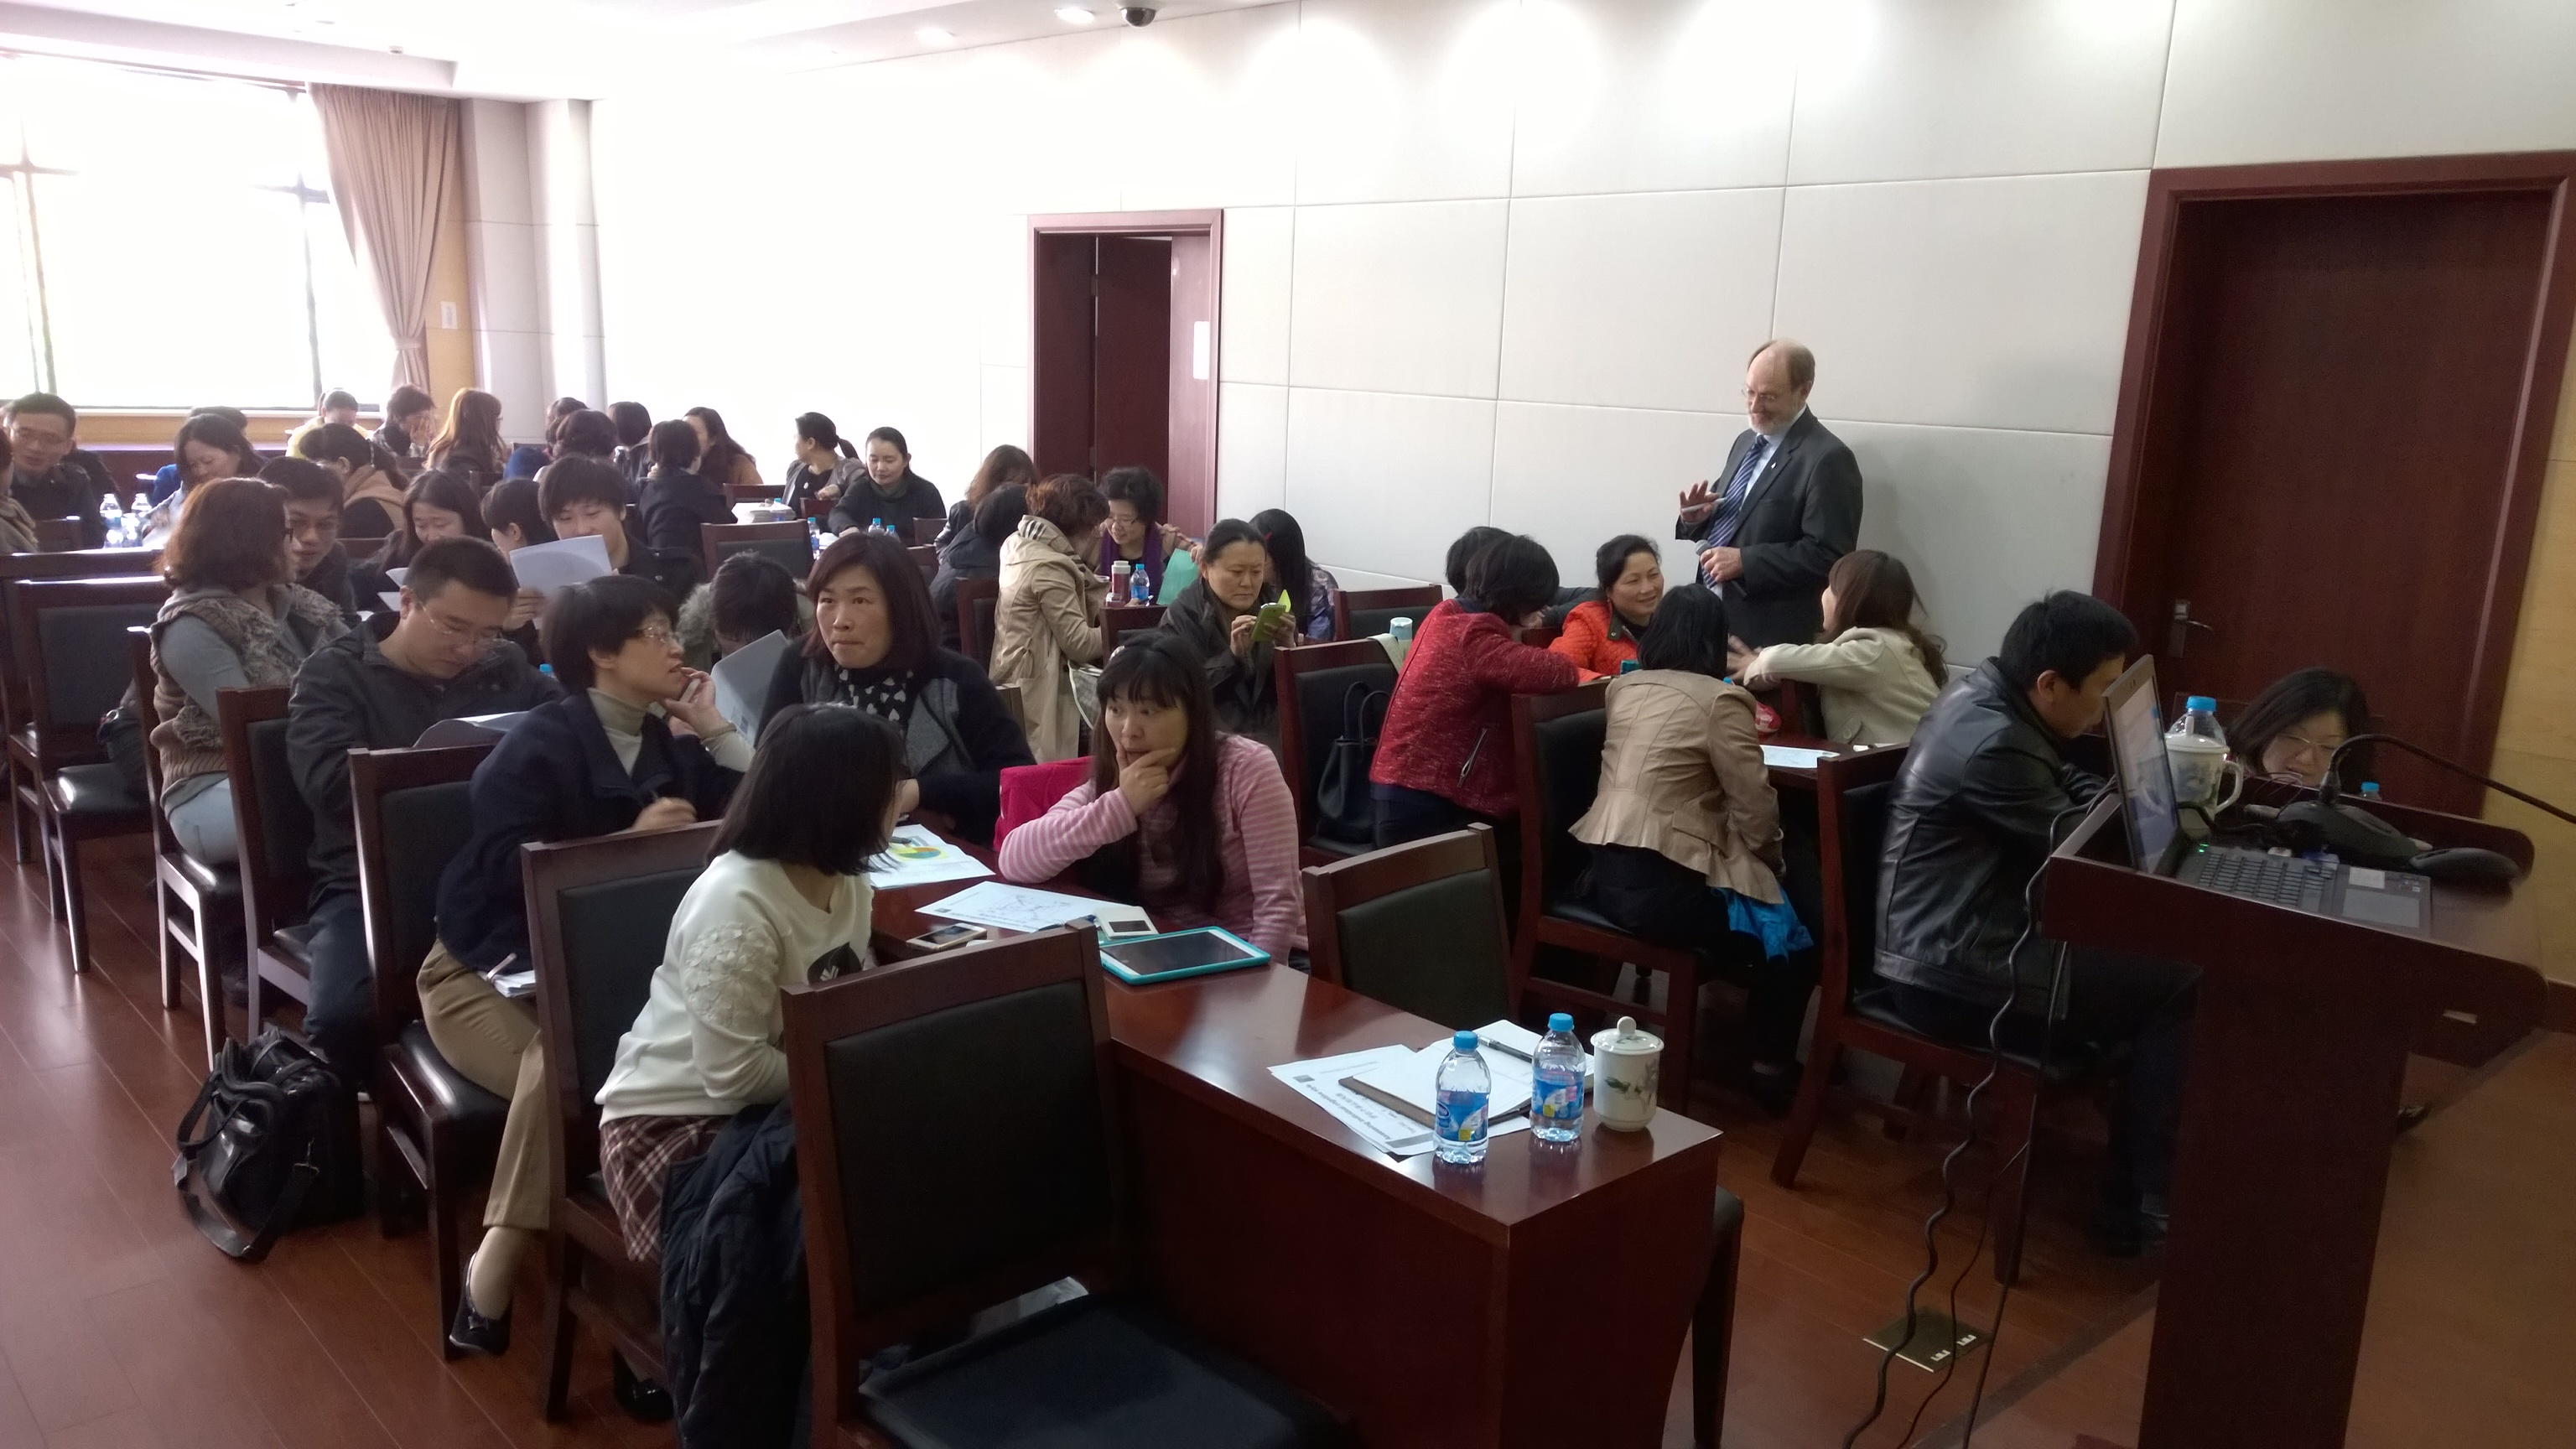 training and development was conducted at Learn reasons and benefits of employee training and development in this topic from the free suggest reasons for supervisors to conduct training among.